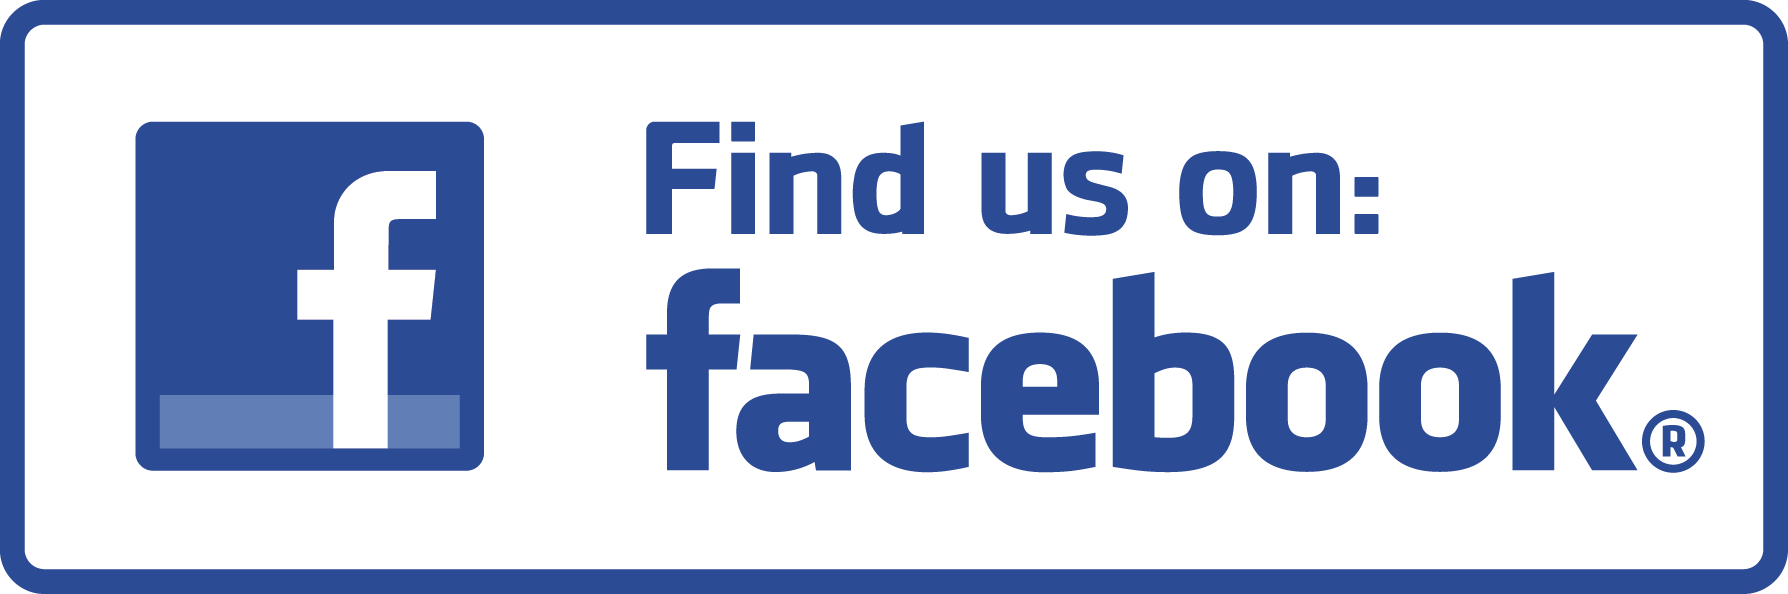 Find Us On Facebook Vector PNG - 34022